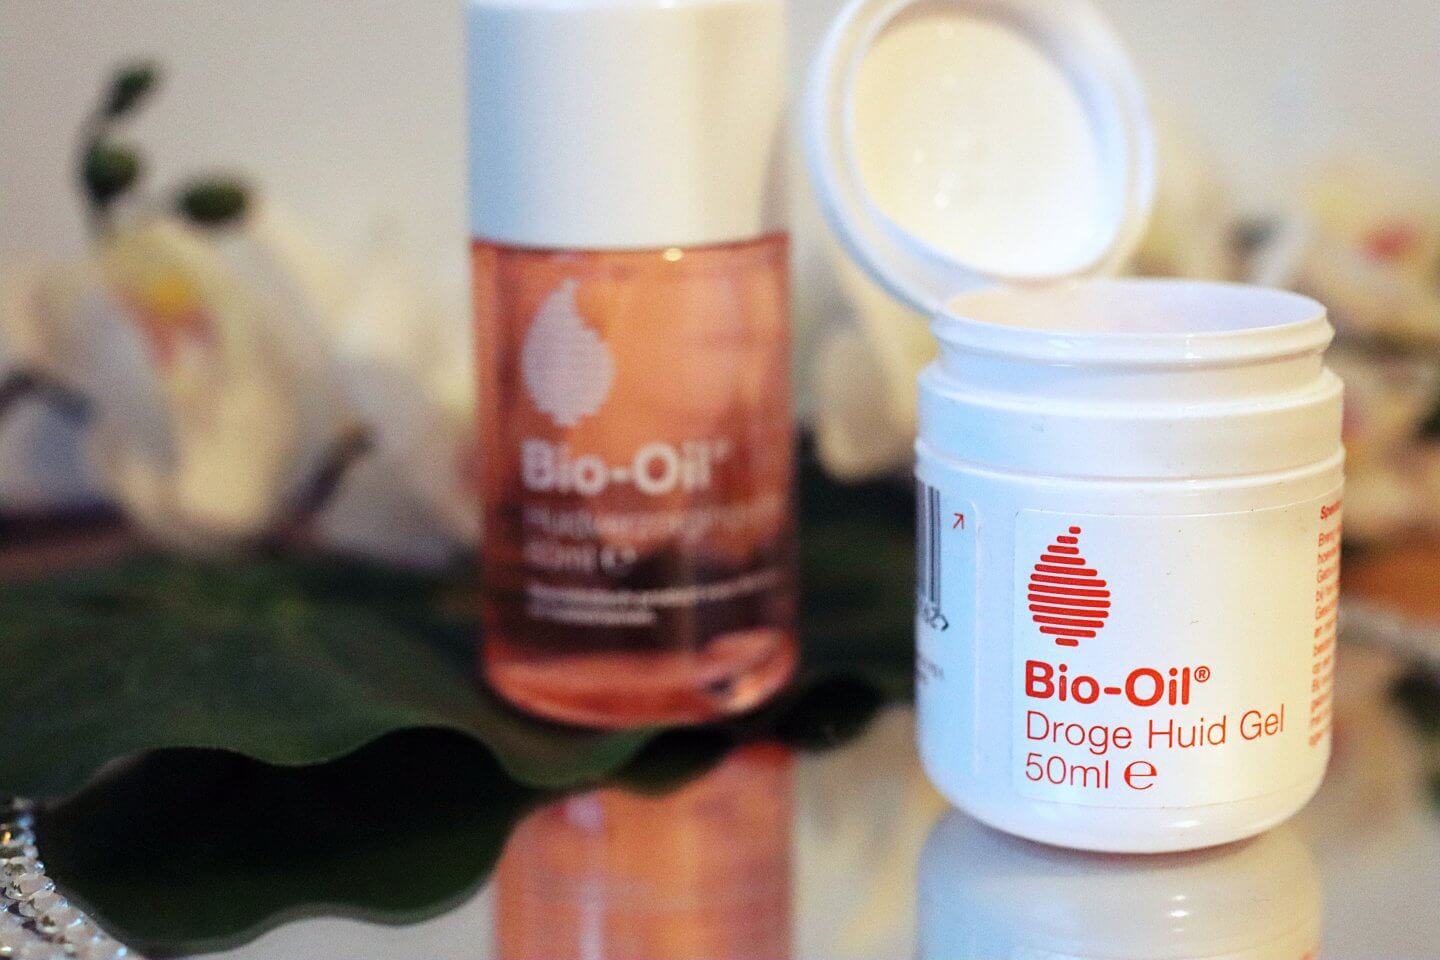 Want to know my Bio Oil secret to solve dry skin?